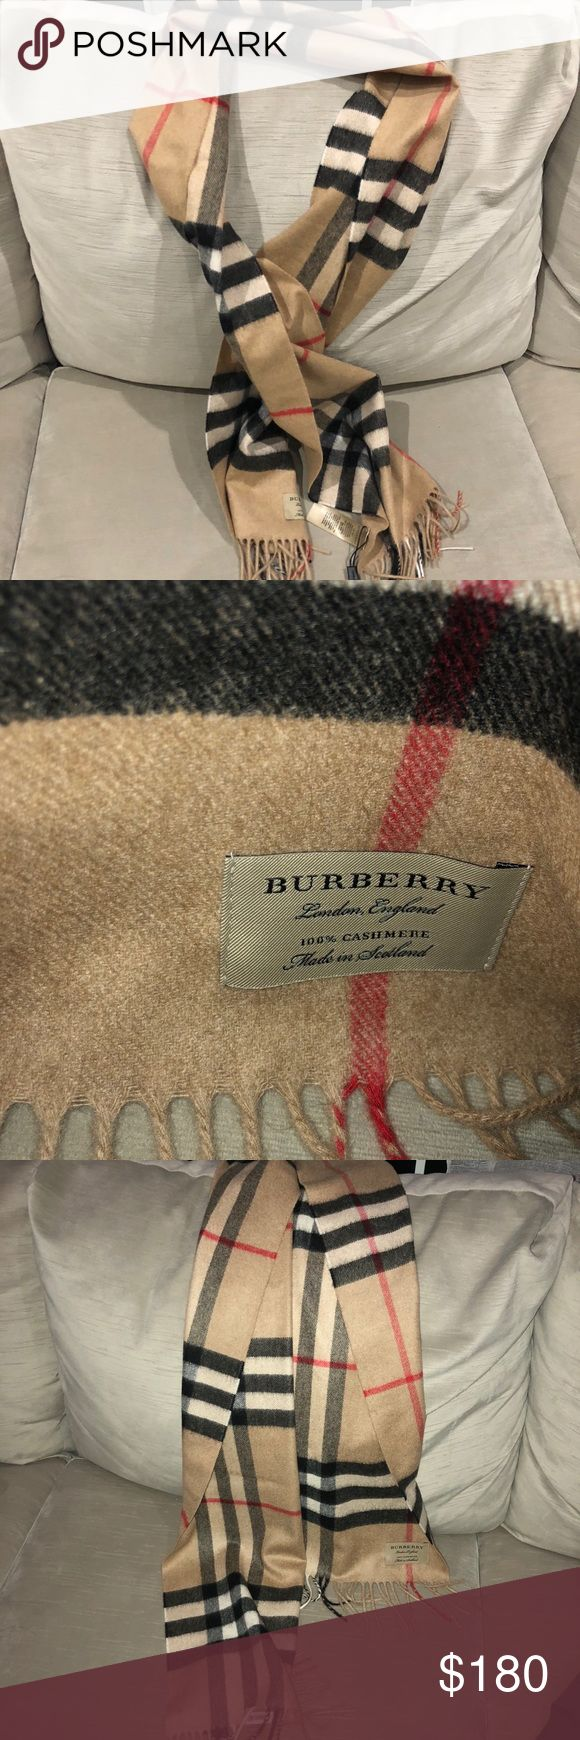 Burberry NWT cashmere camel scarf 💯 Authentic Burberry NWT cashmere rose pink scarf 💯 Authentic , New With Tags Burberry Accessories Scarves & Wraps